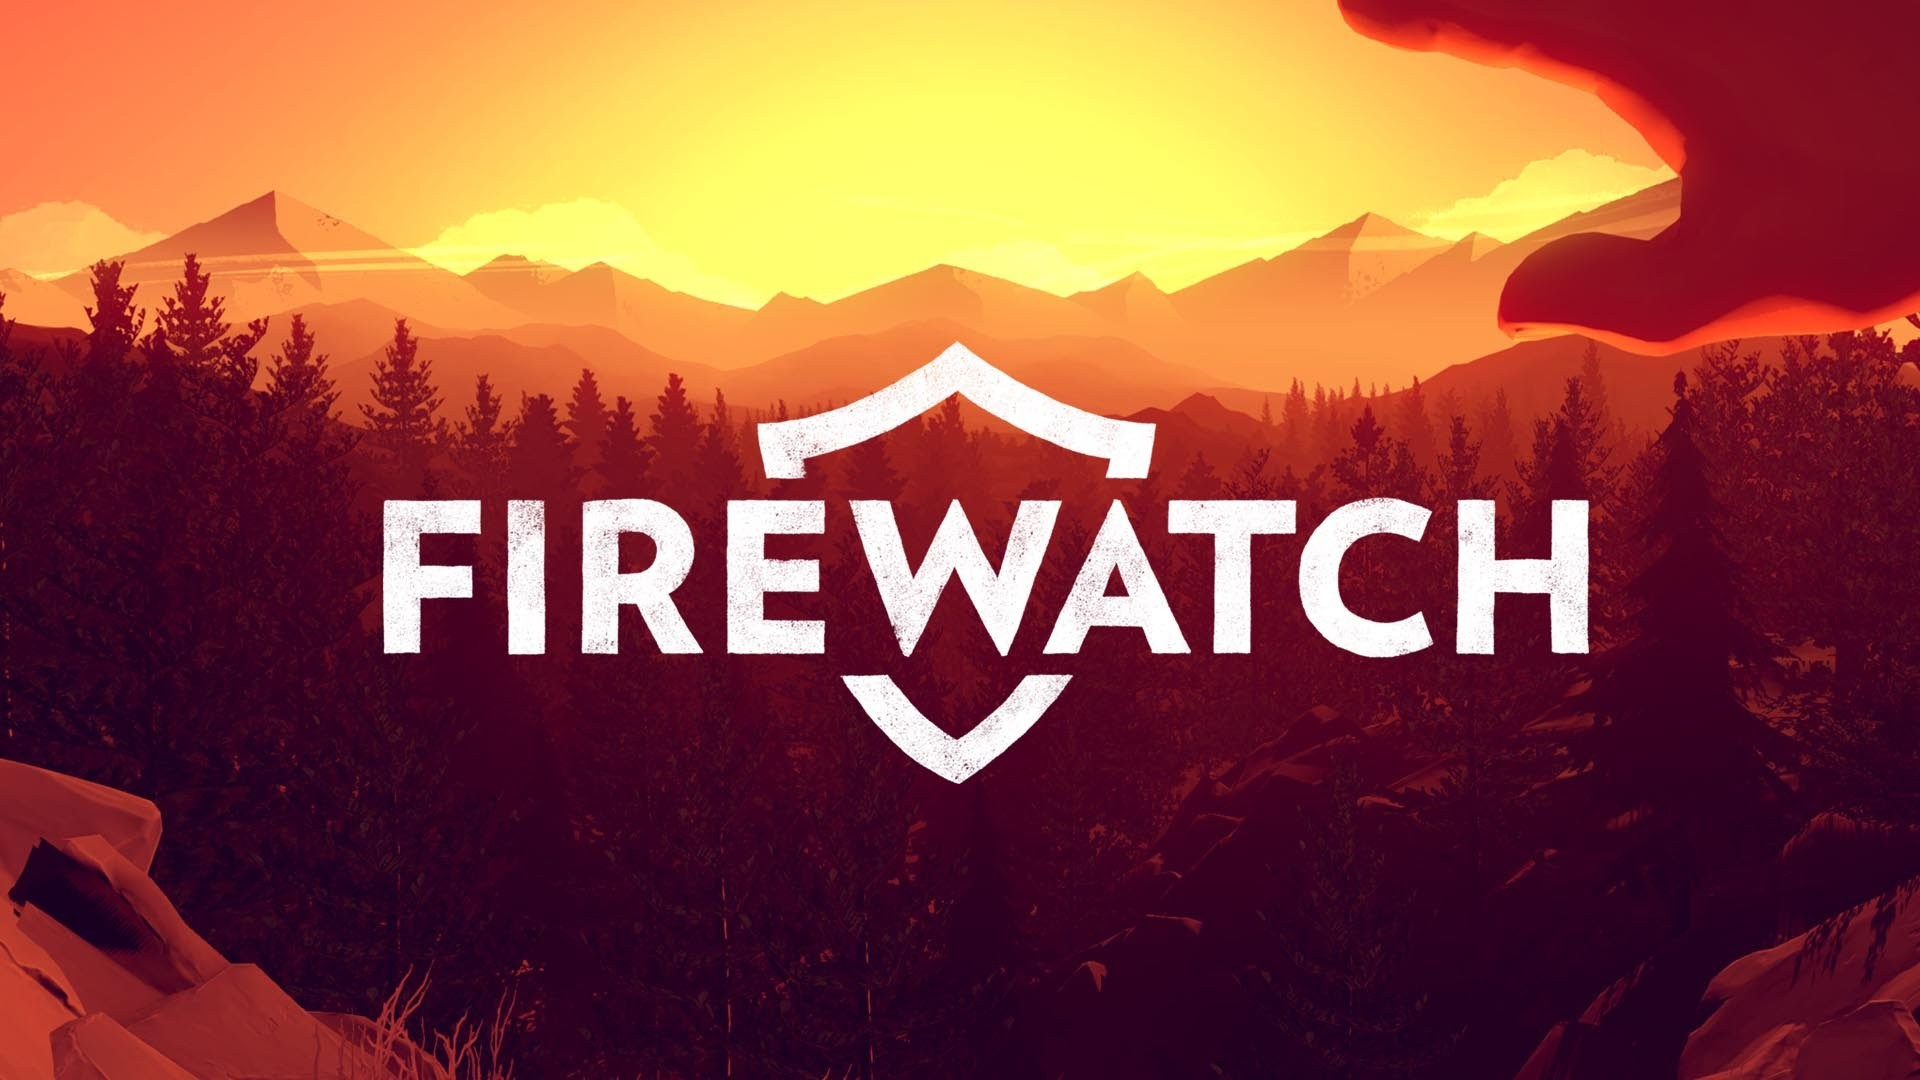 640x960 Firewatch Game Logo Iphone 4 Iphone 4s Hd 4k Wallpapers